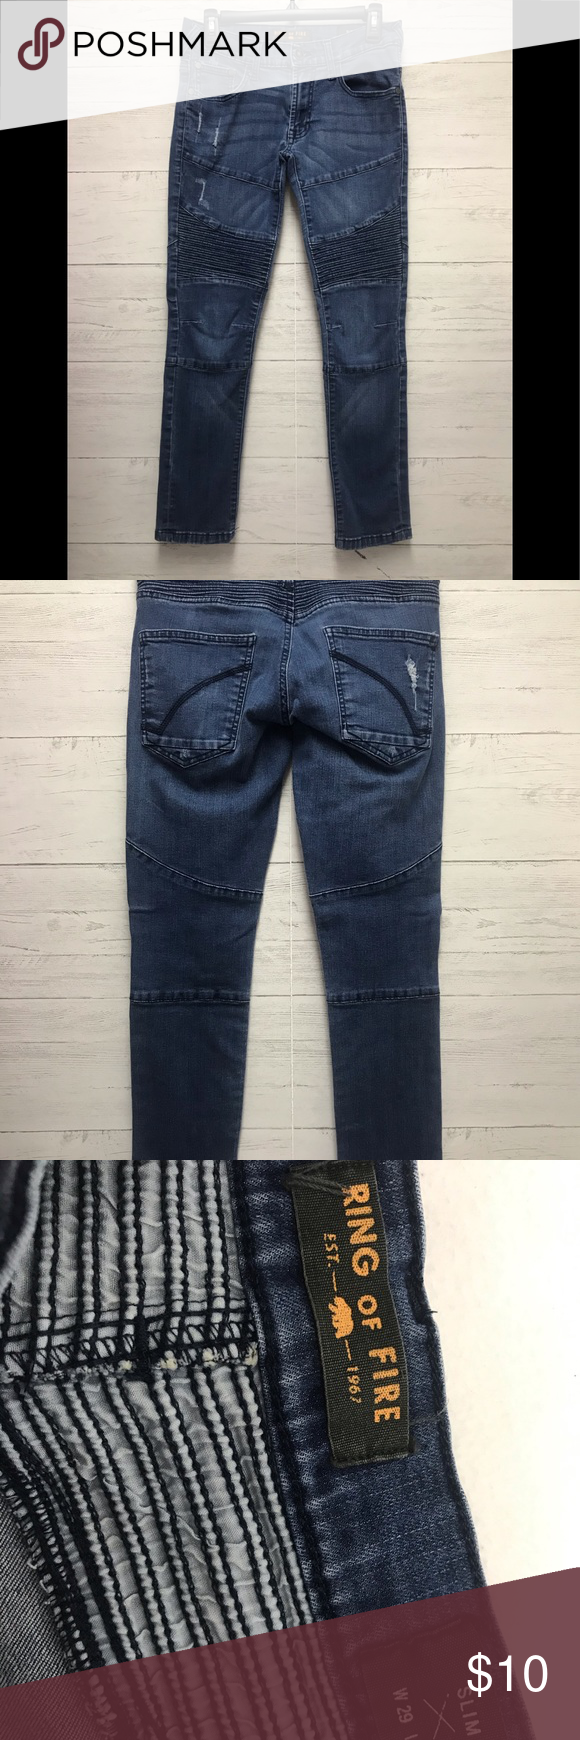 30++ Ring of fire jeans ideas information